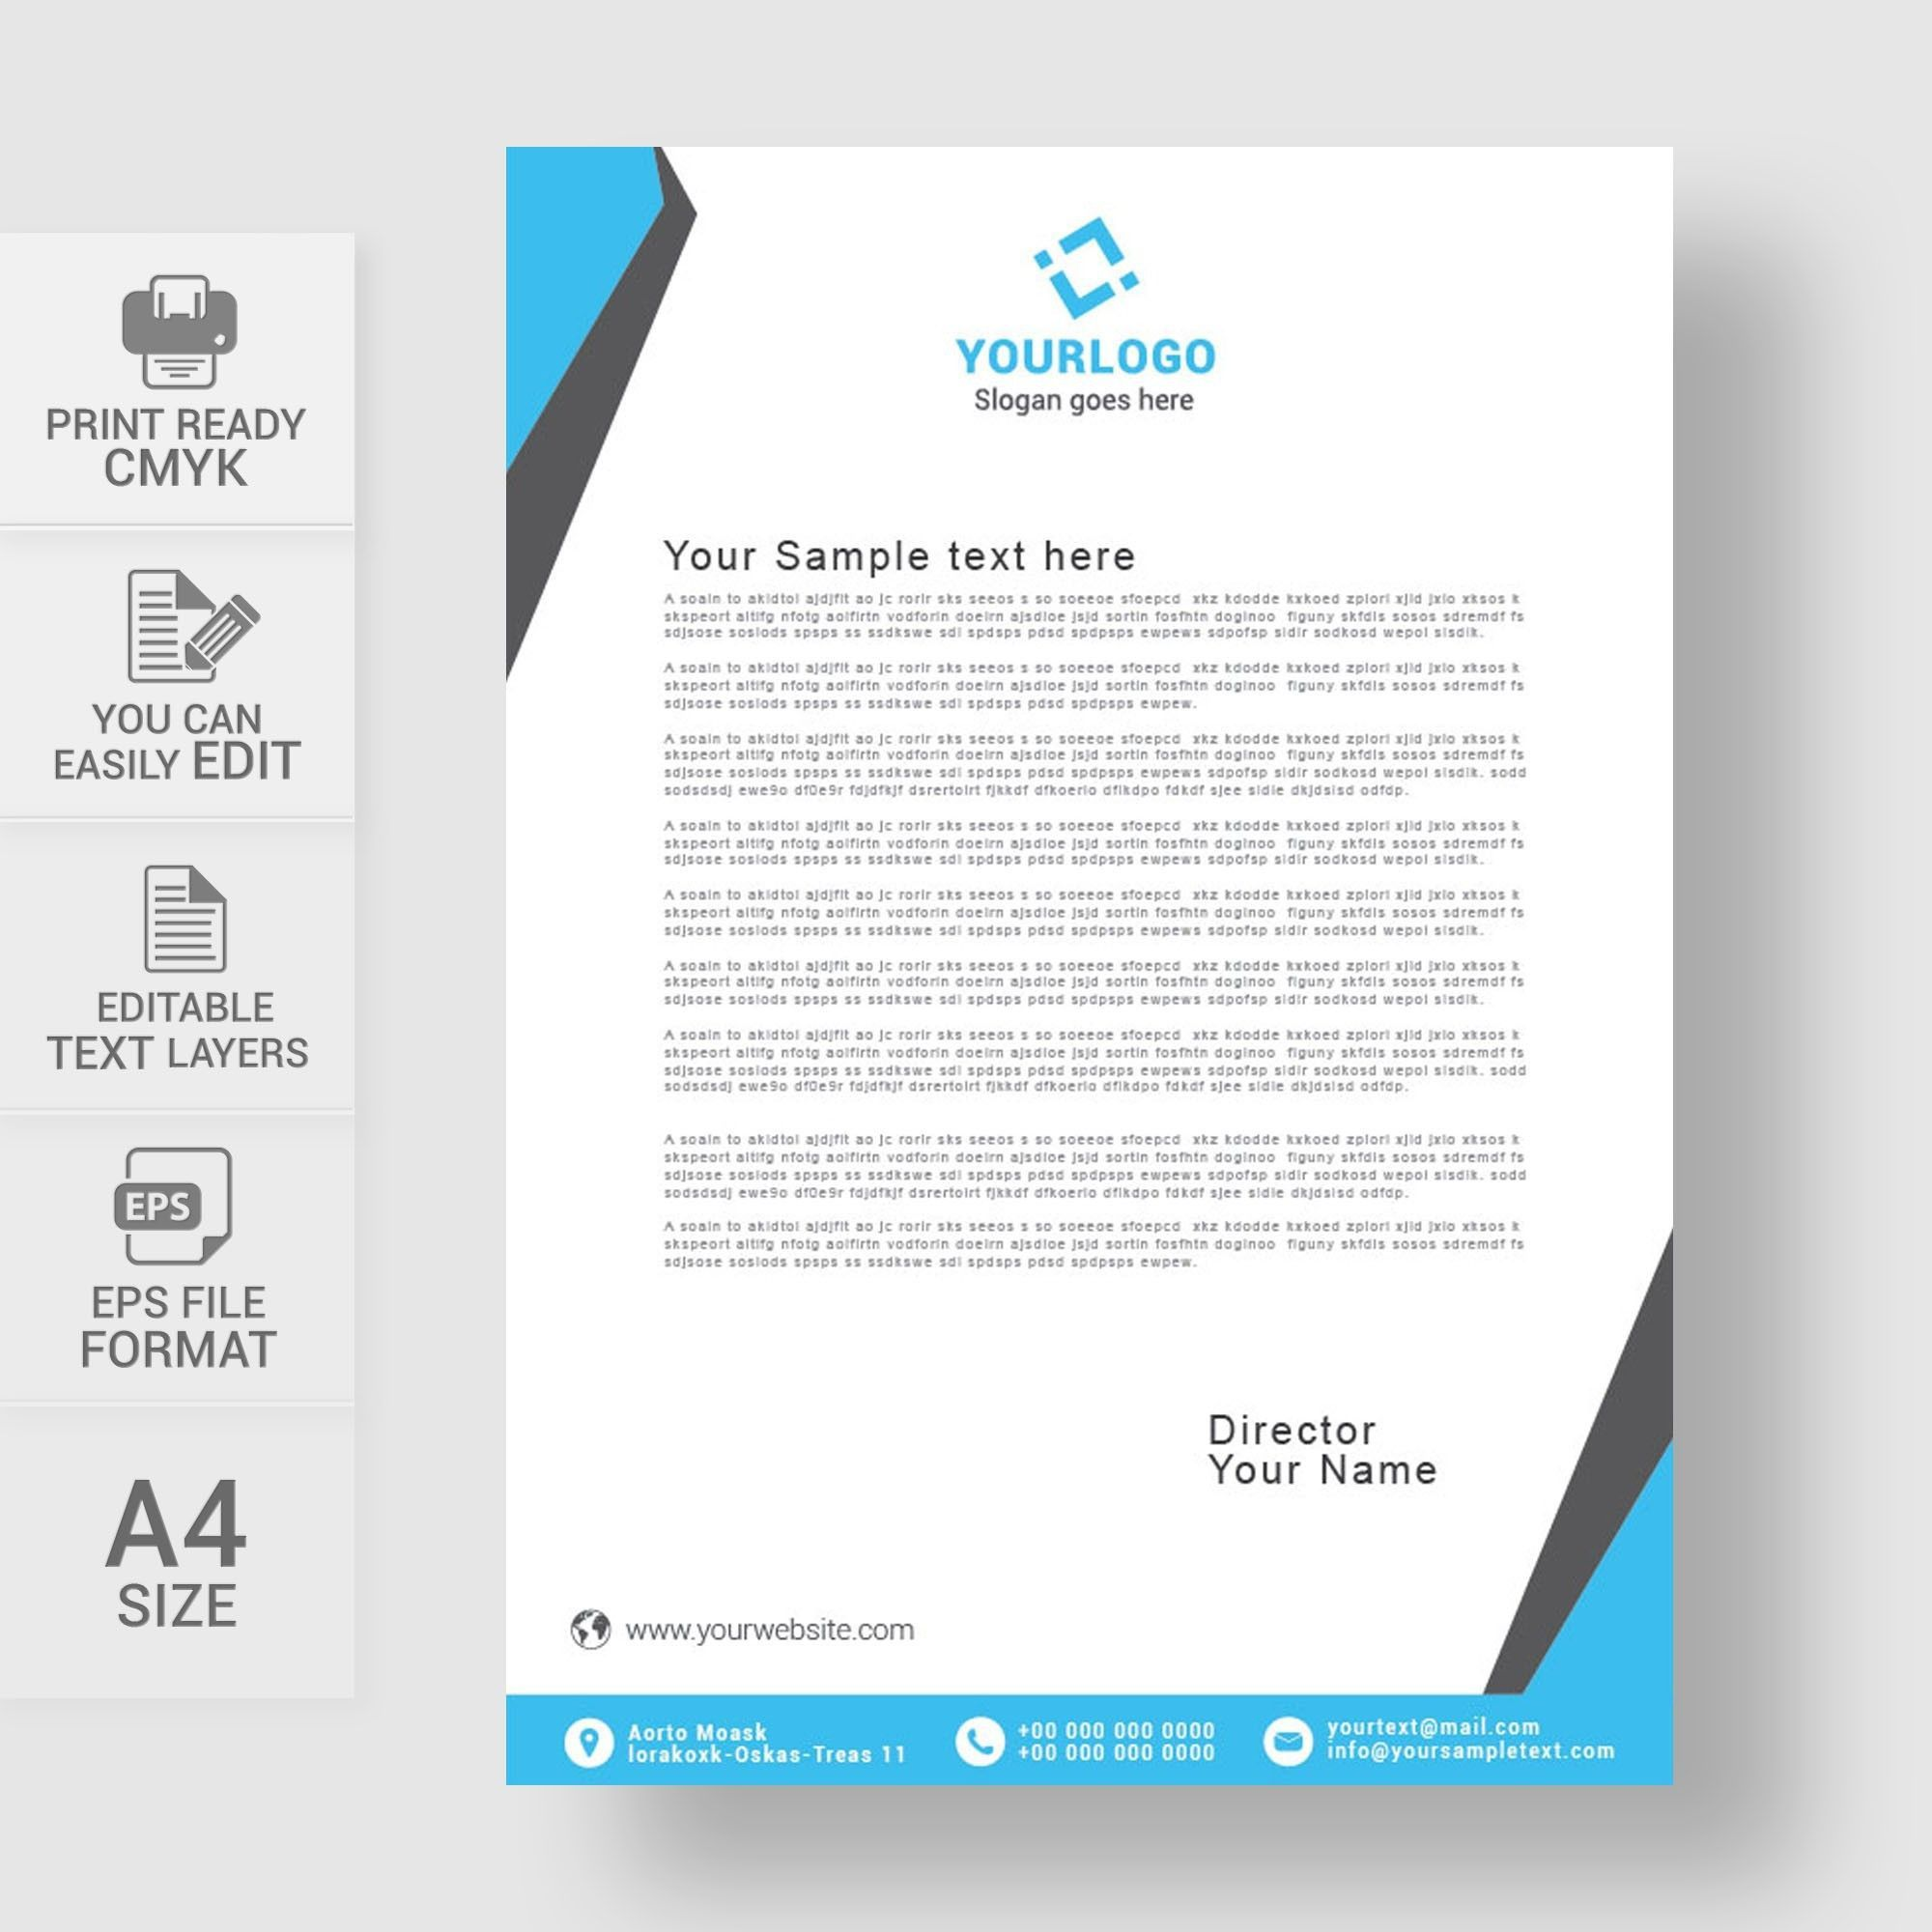 002 Sensational Letterhead Sample In Word Format Free Download Highest Clarity  Design Template PsdFull